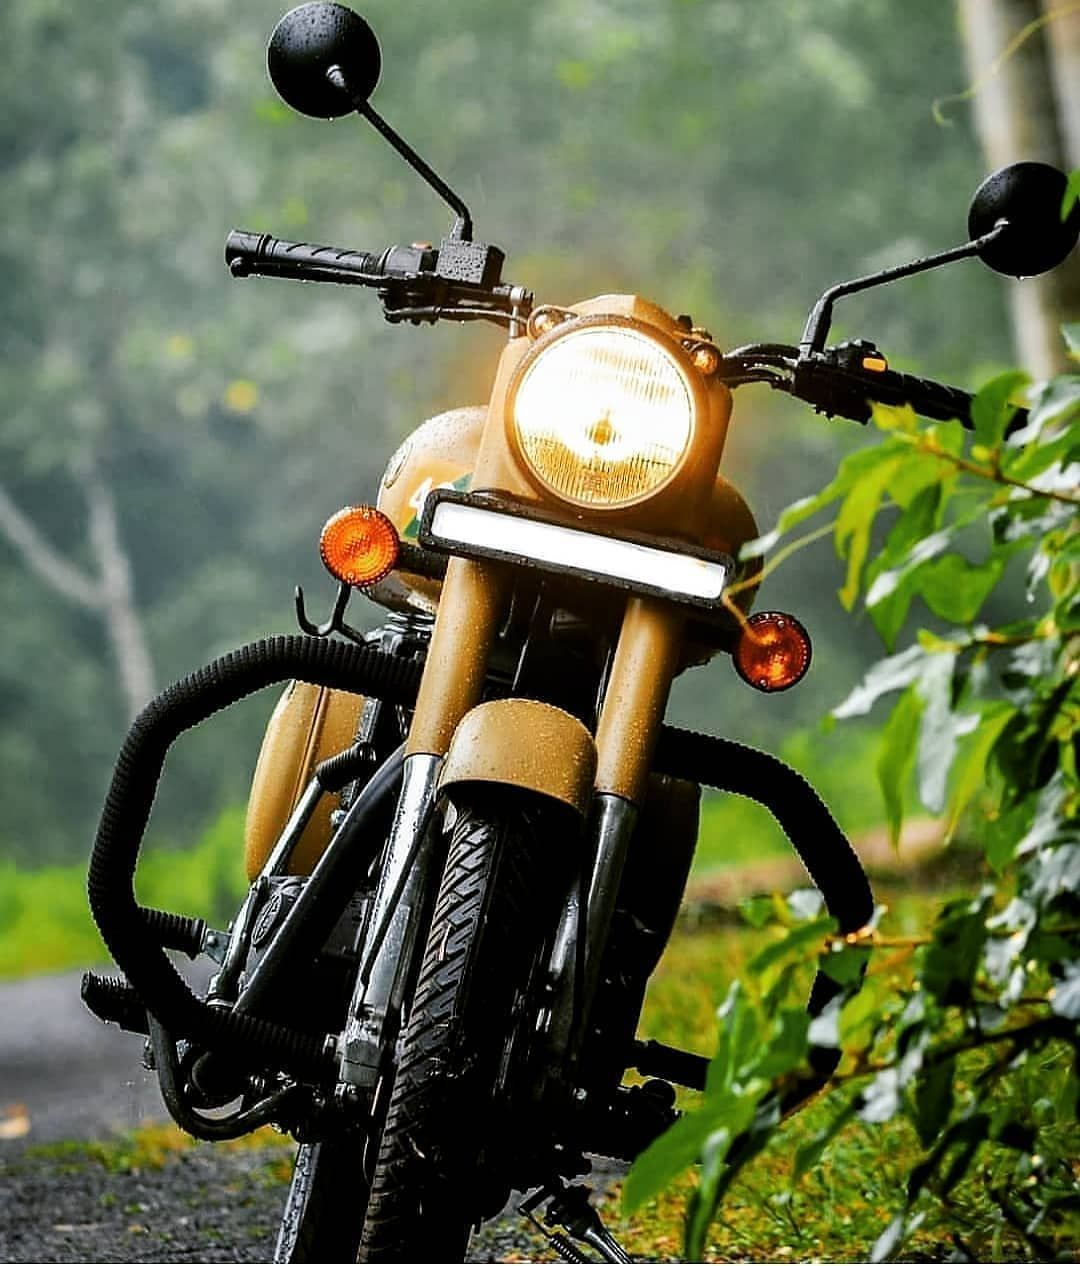 Image may contain motorcycle and outdoor Royal enfield